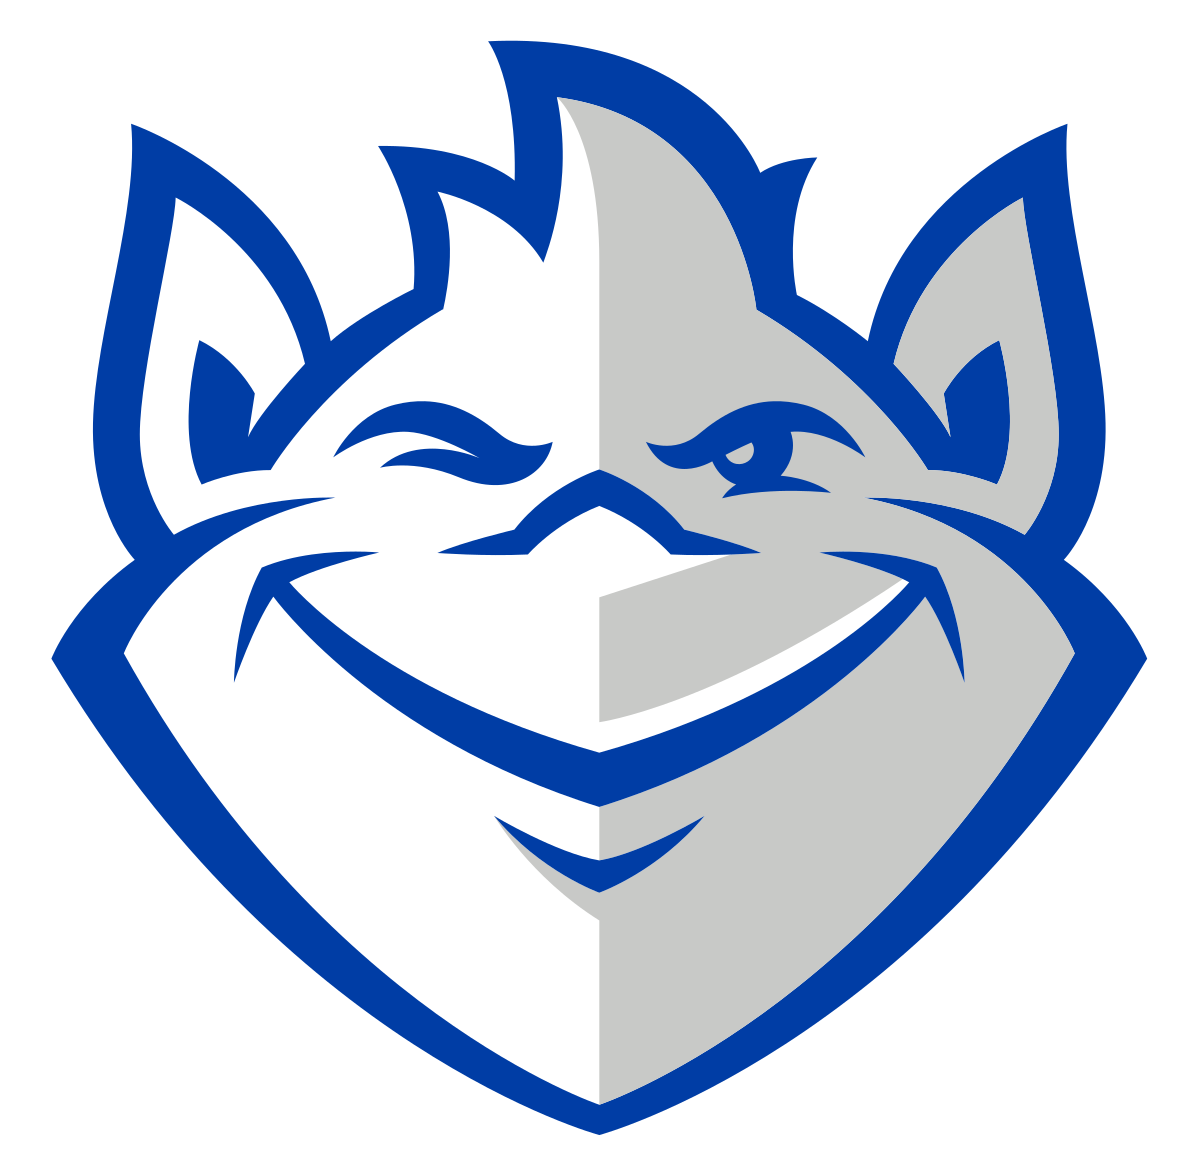 West st john rams football clipart image freeuse library Saint Louis Billikens - Wikipedia image freeuse library